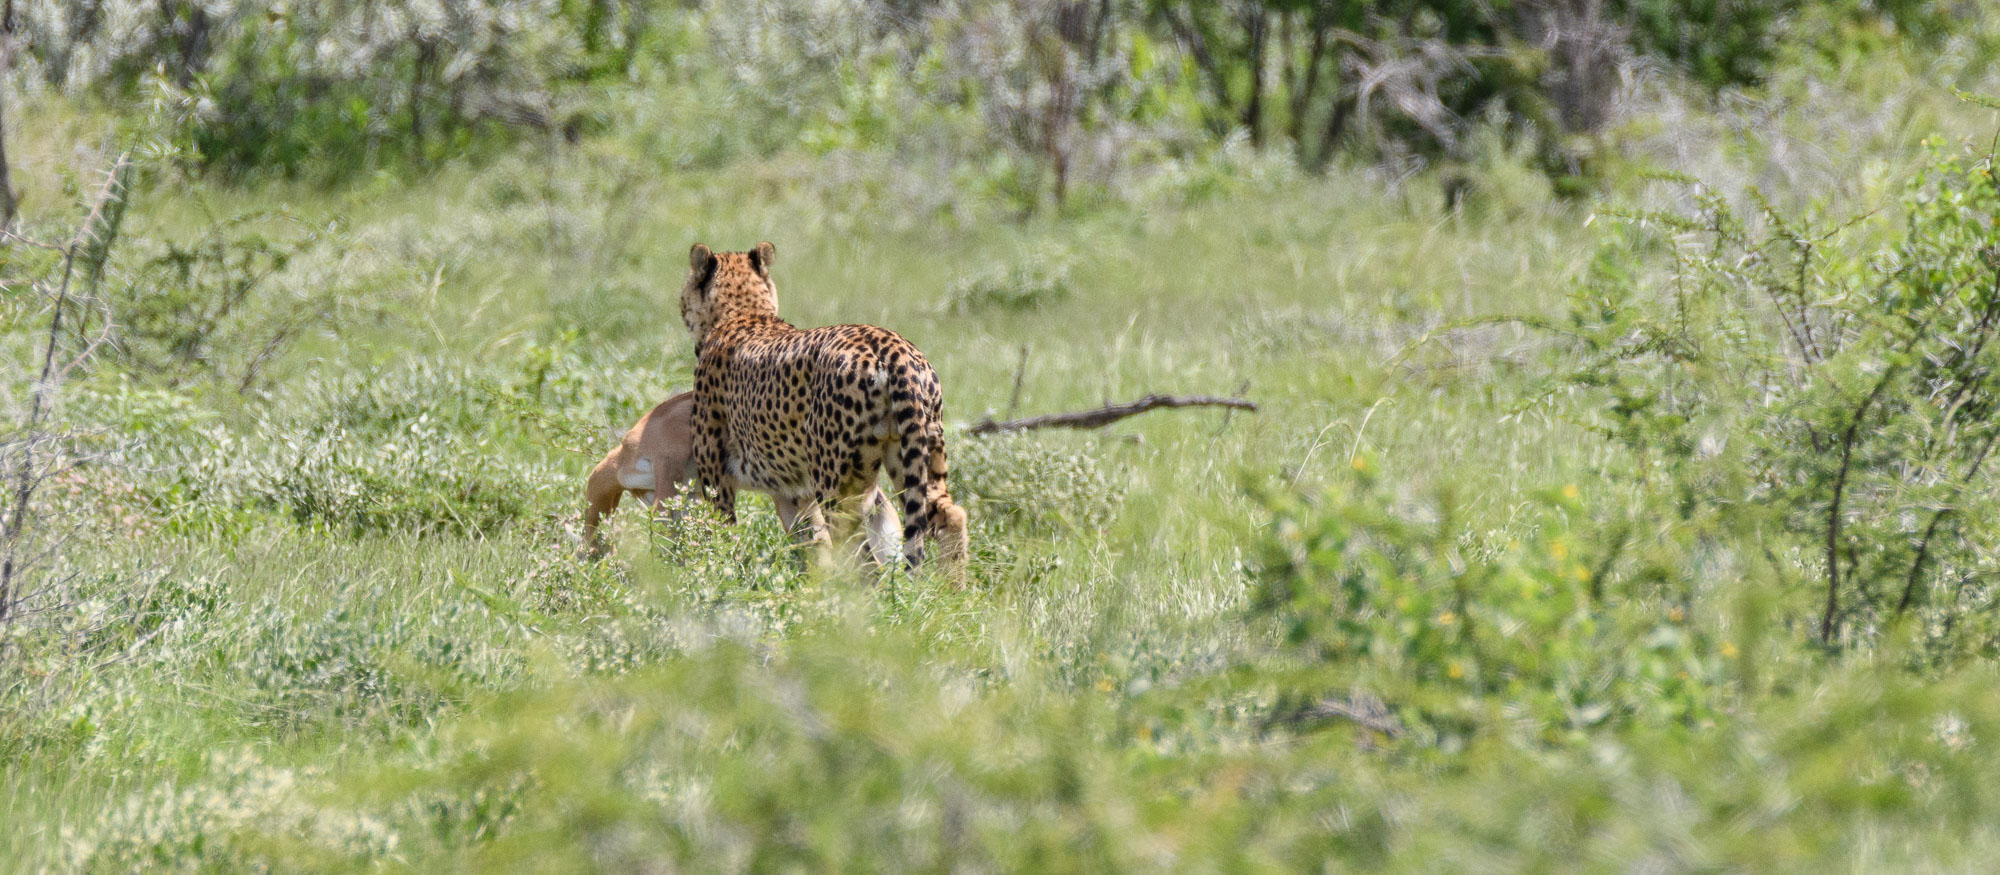 After a few minutes the cheetah carried it's prize into deep cover where no doubt it would eat and rest, hopefully without the attention of other predators.